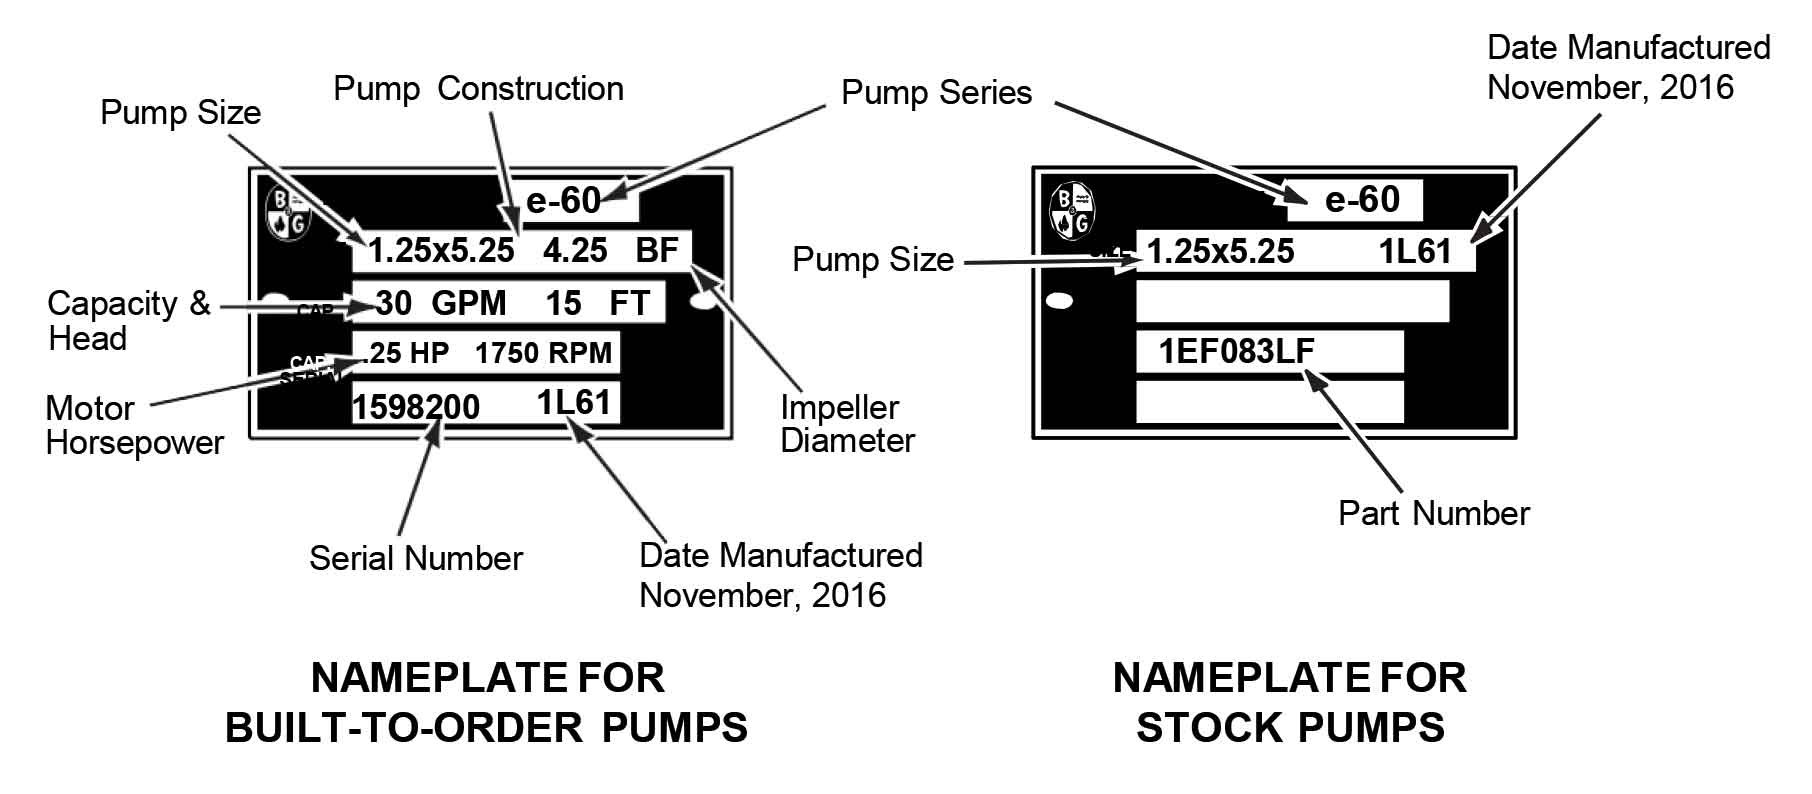 Bell Amp Gossett Series E 60 In Line Centrifugal Pumps